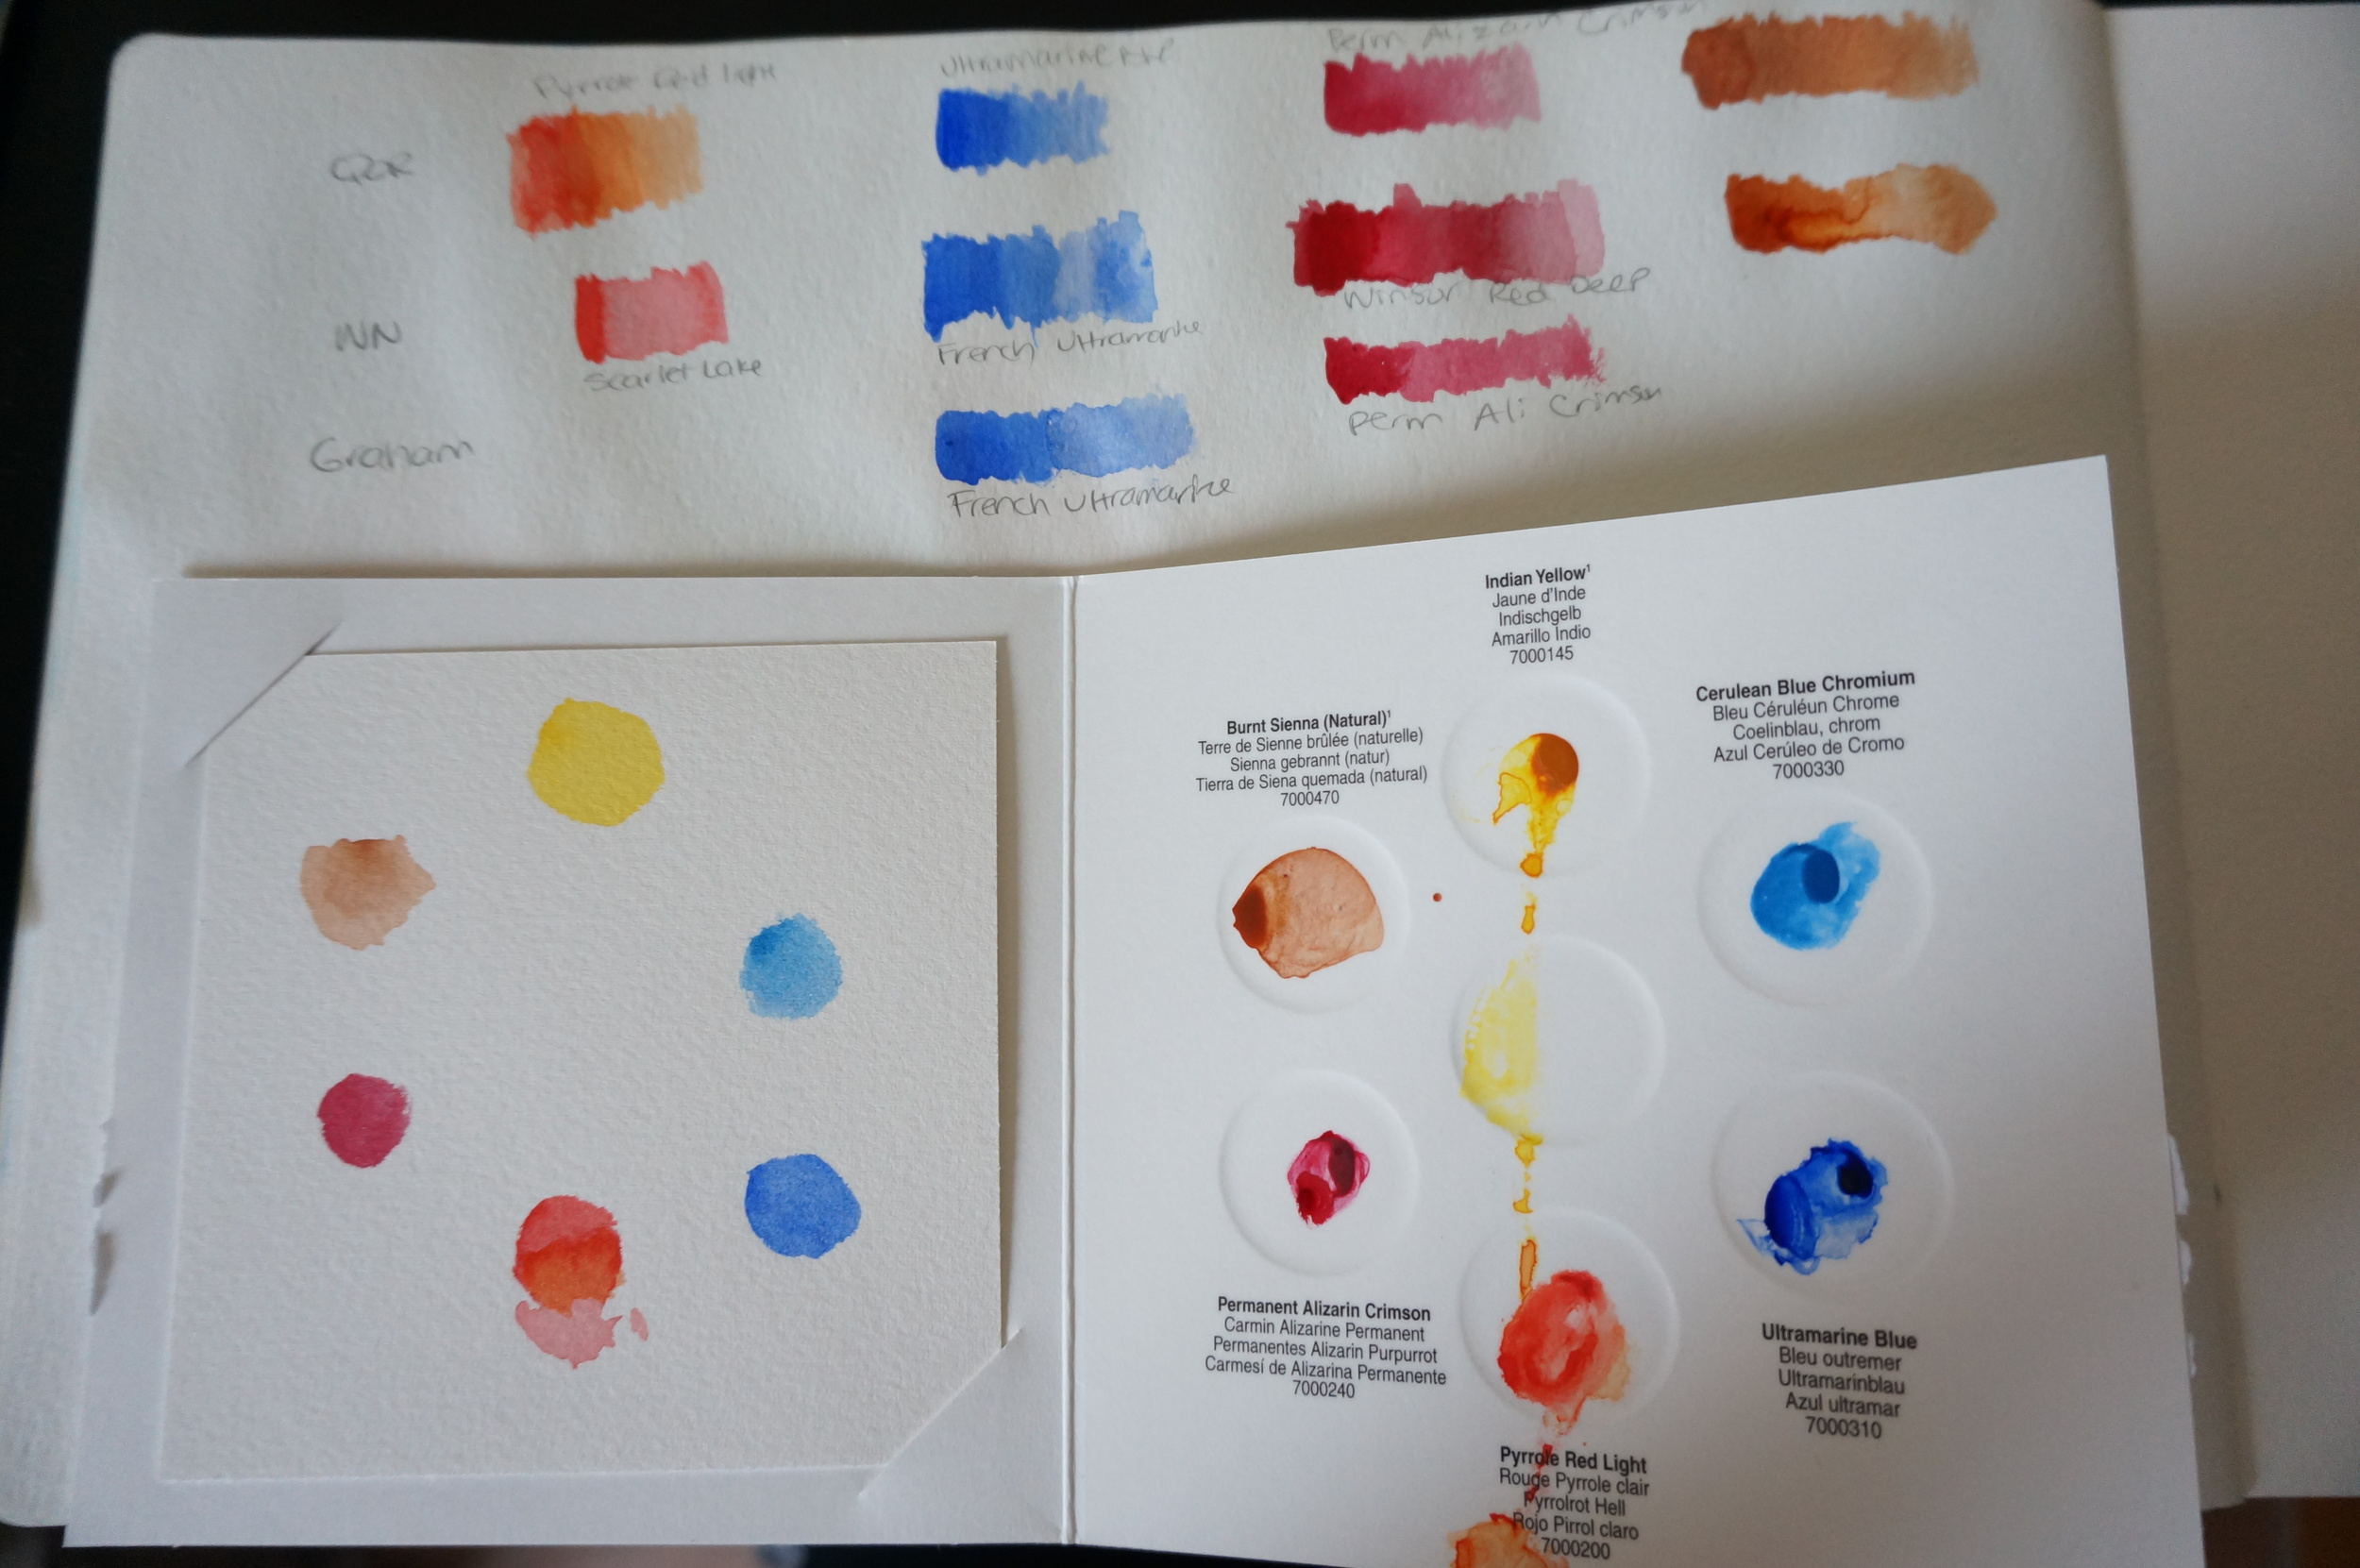 Introductory Card Samples -Featuring: Indian Yellow, Cerulean Blue Chromium, Permanent Alizarin Crimson, Pyrrole Red Light, Ultramarine Blue